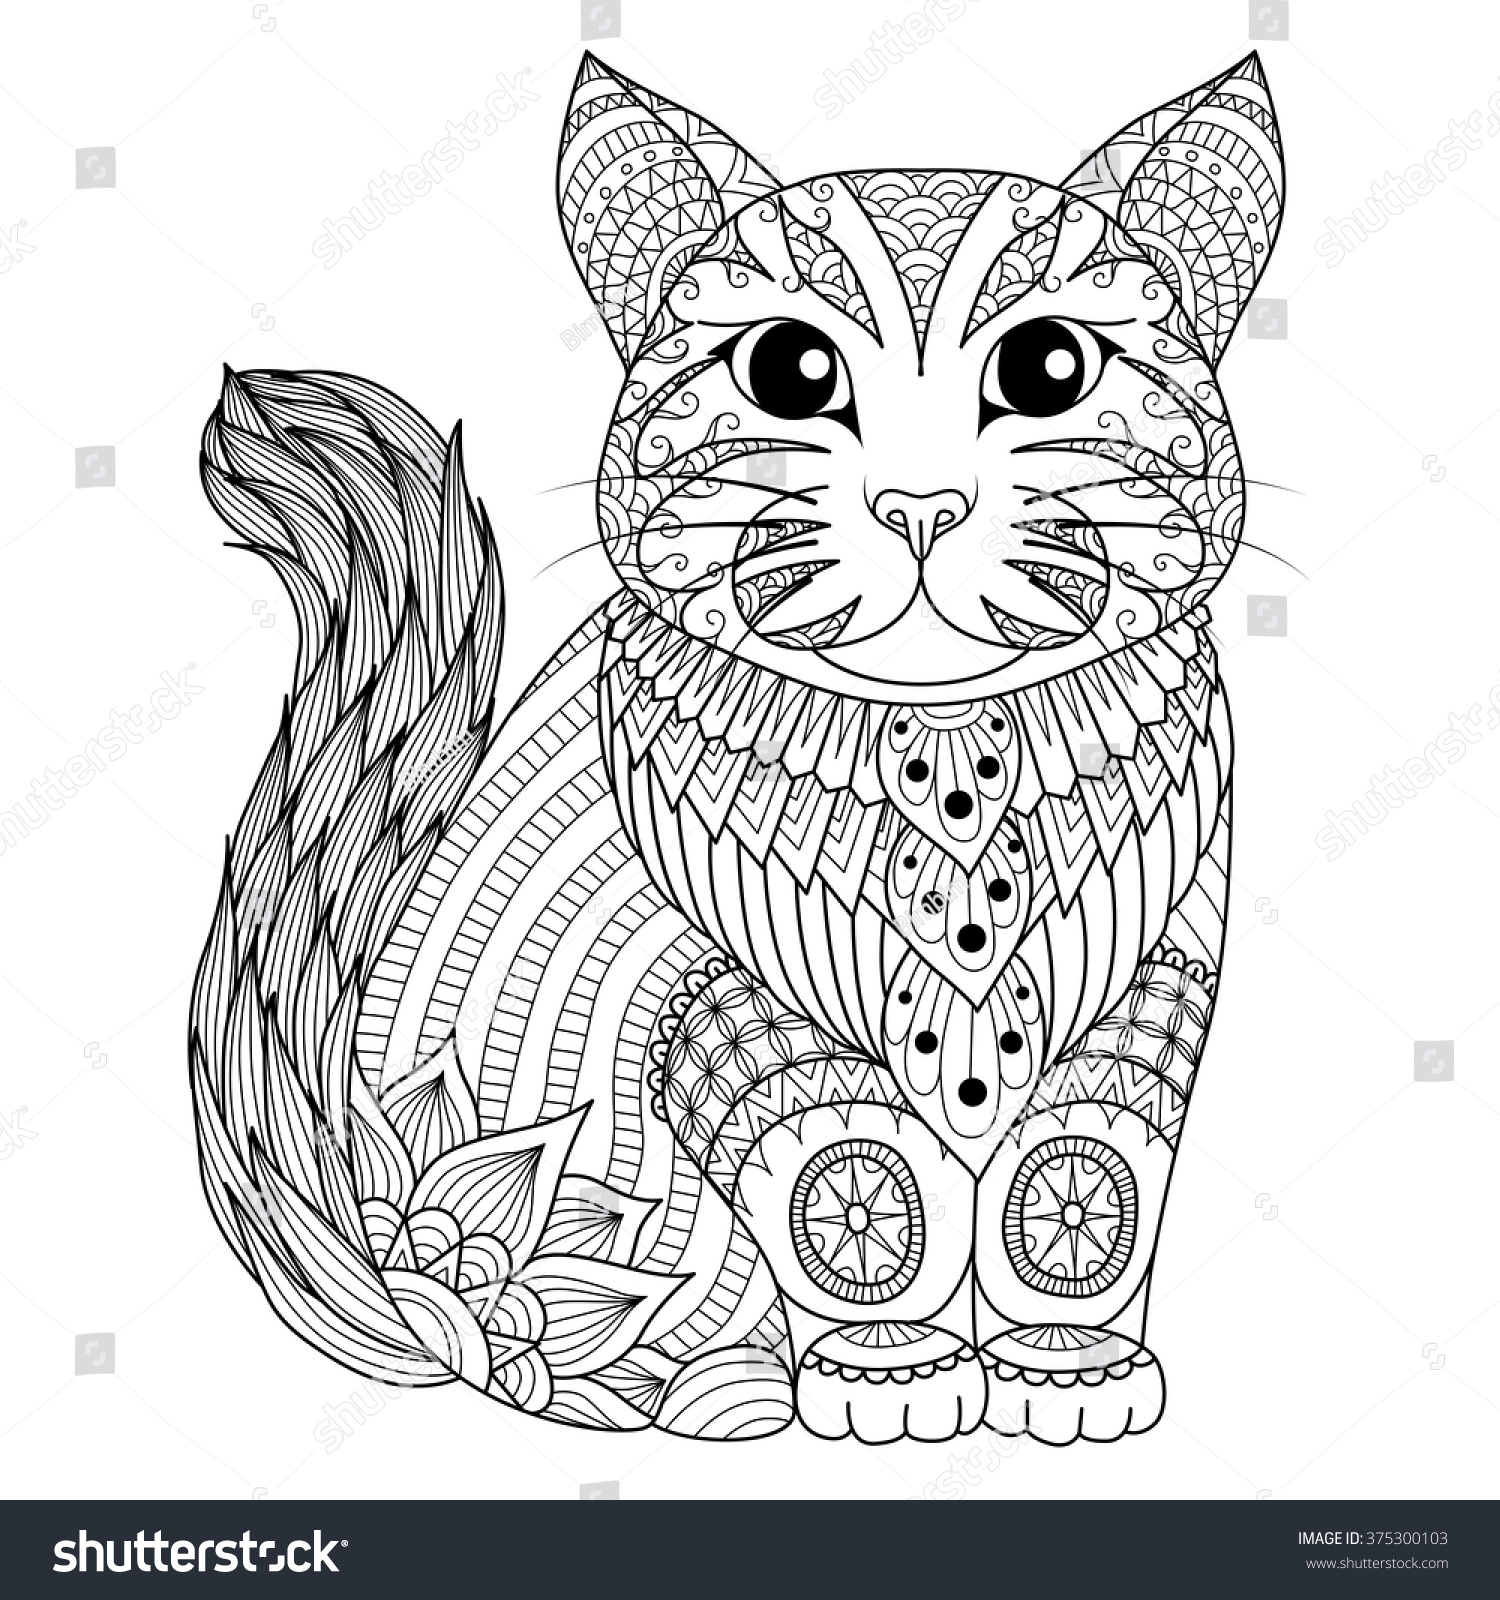 Drawing Zentangle Cat Coloring Page Shirt Stock Vector (Royalty Free ...